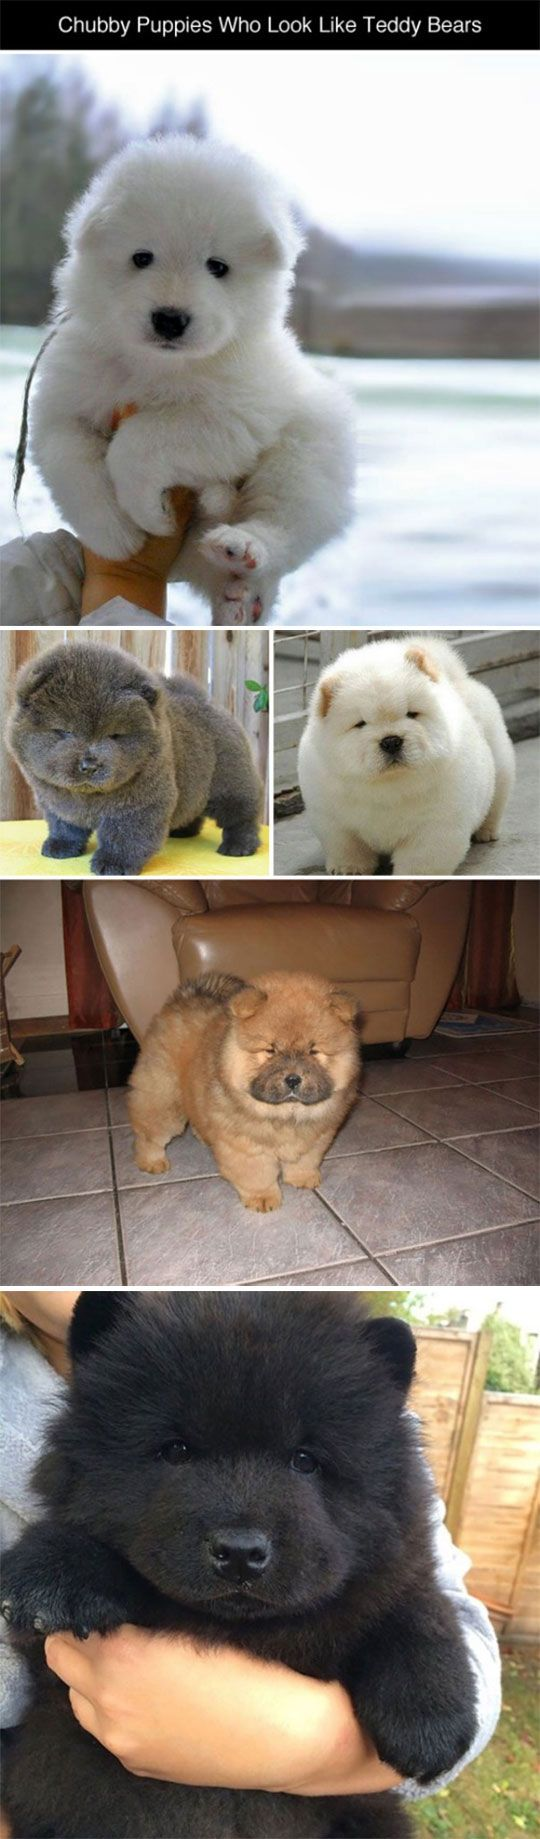 Puppies Who Look Like Teddy Bears